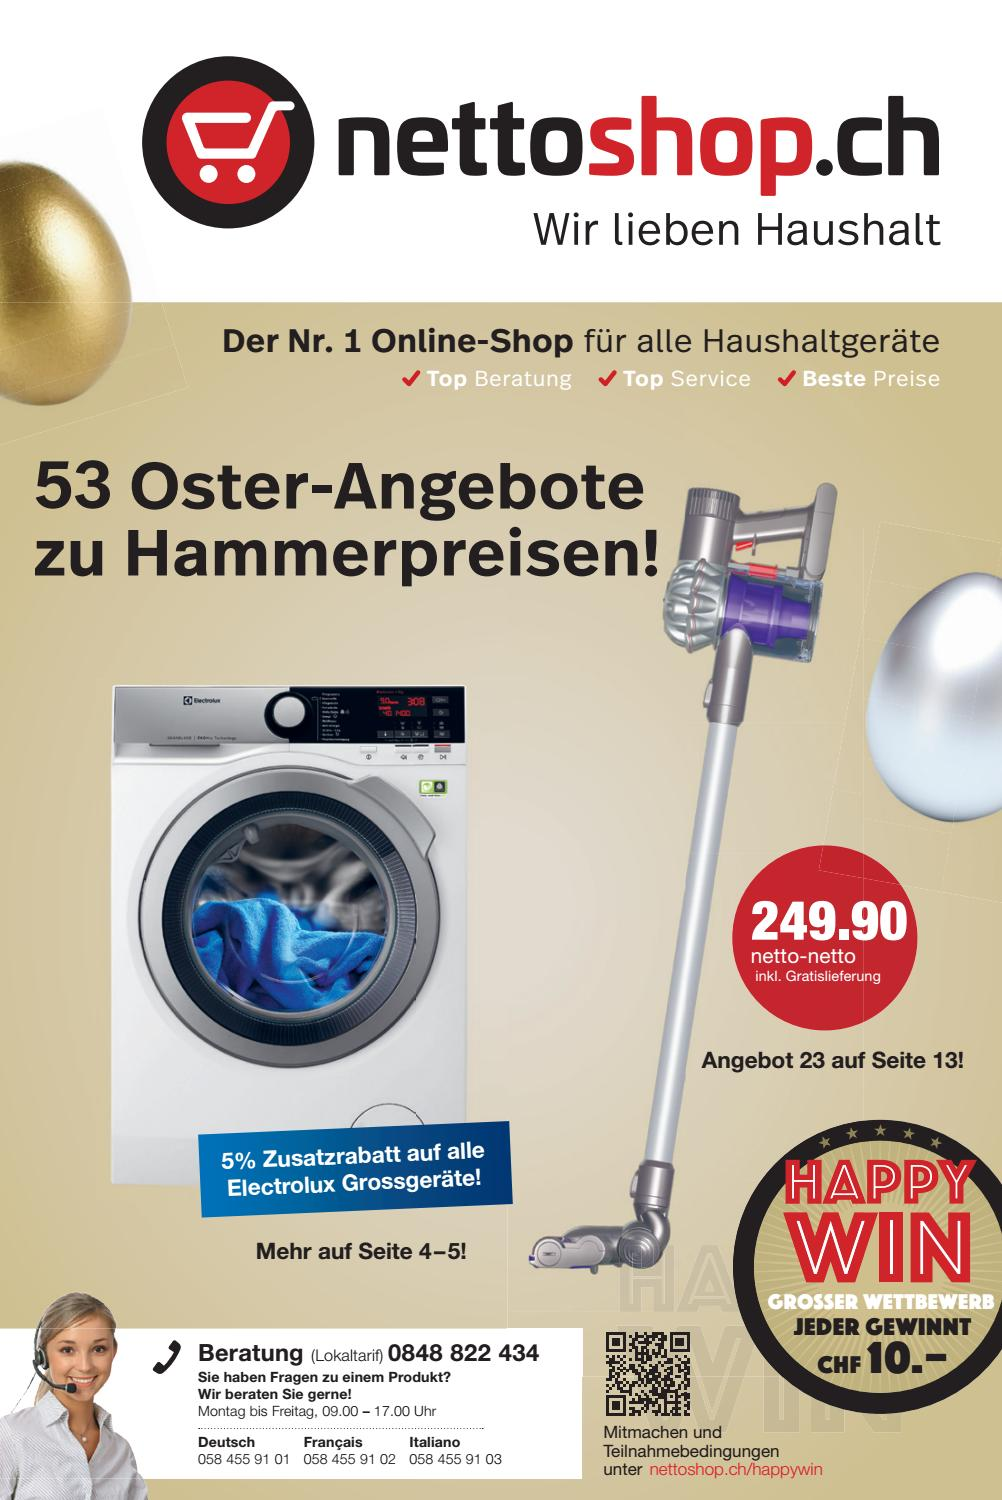 Klimagerät Nettoshop Nettoshop Ch Flyer 11 1 Deutsch März 2017 By Nettoshop Ch